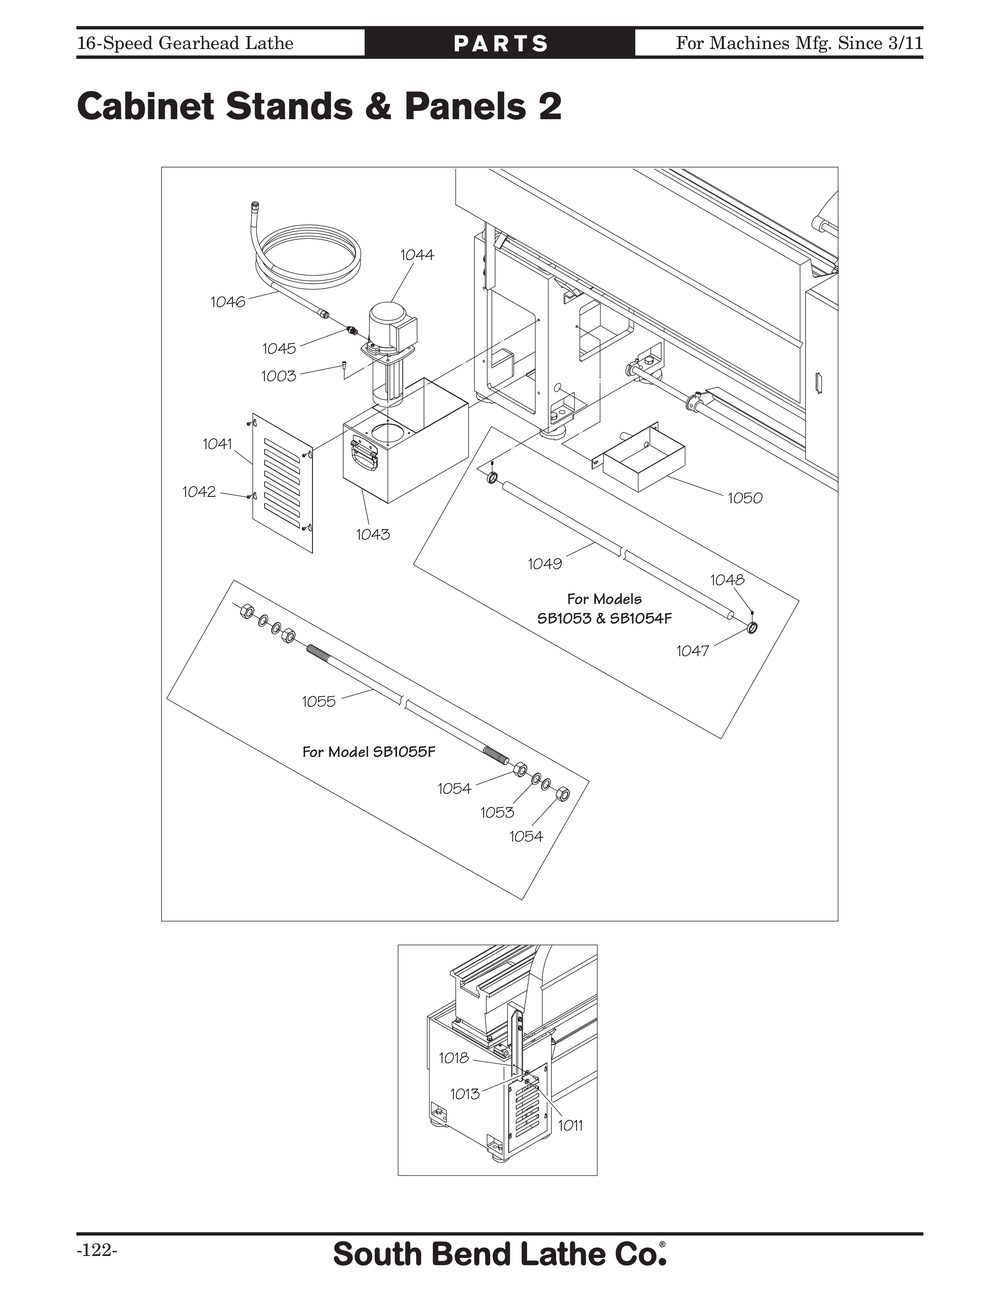 Bend Lathe Motor Wiring Diagram On Air Pressor Auto Electrical Cabin Fuse Box 2001 V70xc Related With